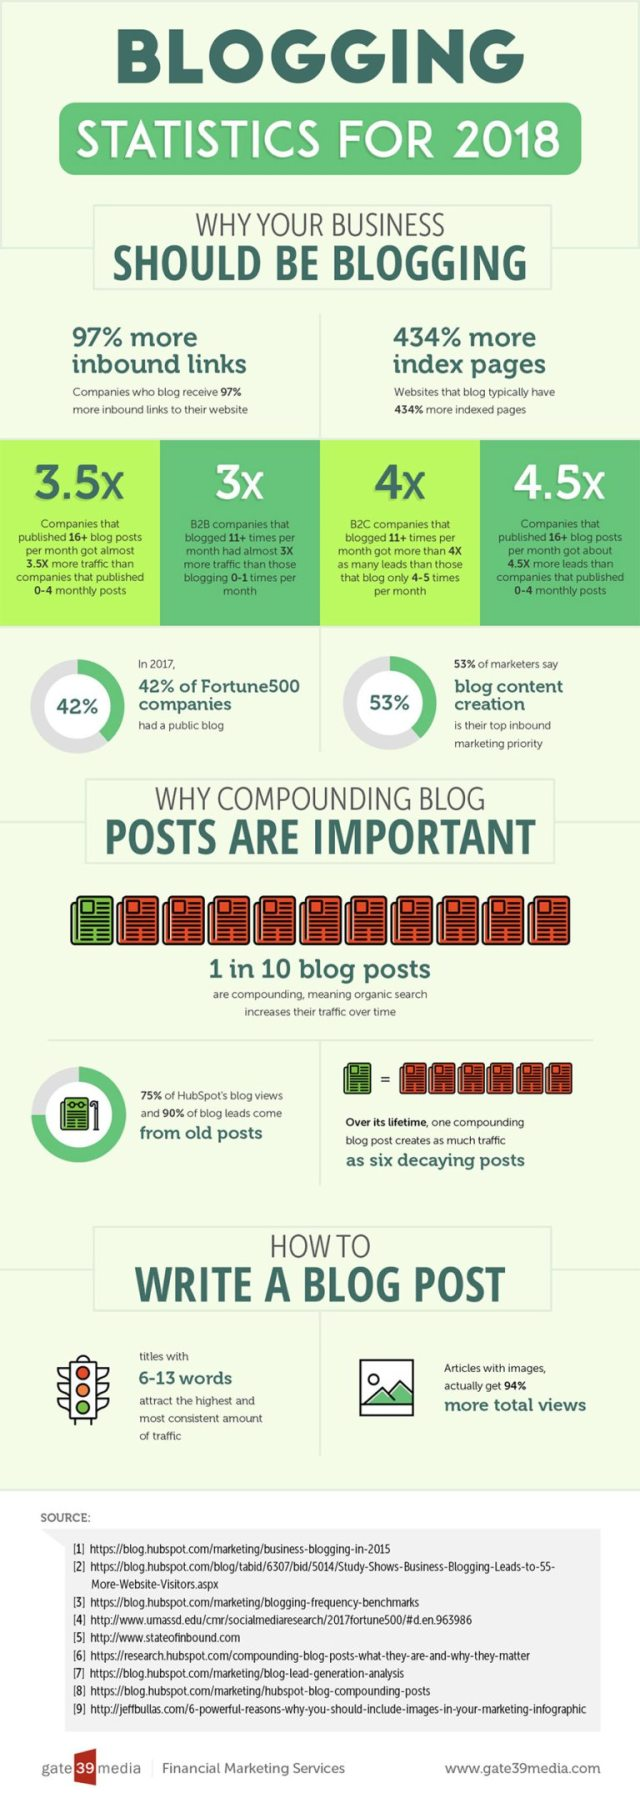 Do you have what it takes to create viral blog posts? Where and how do you start to make your blog posts go viral?